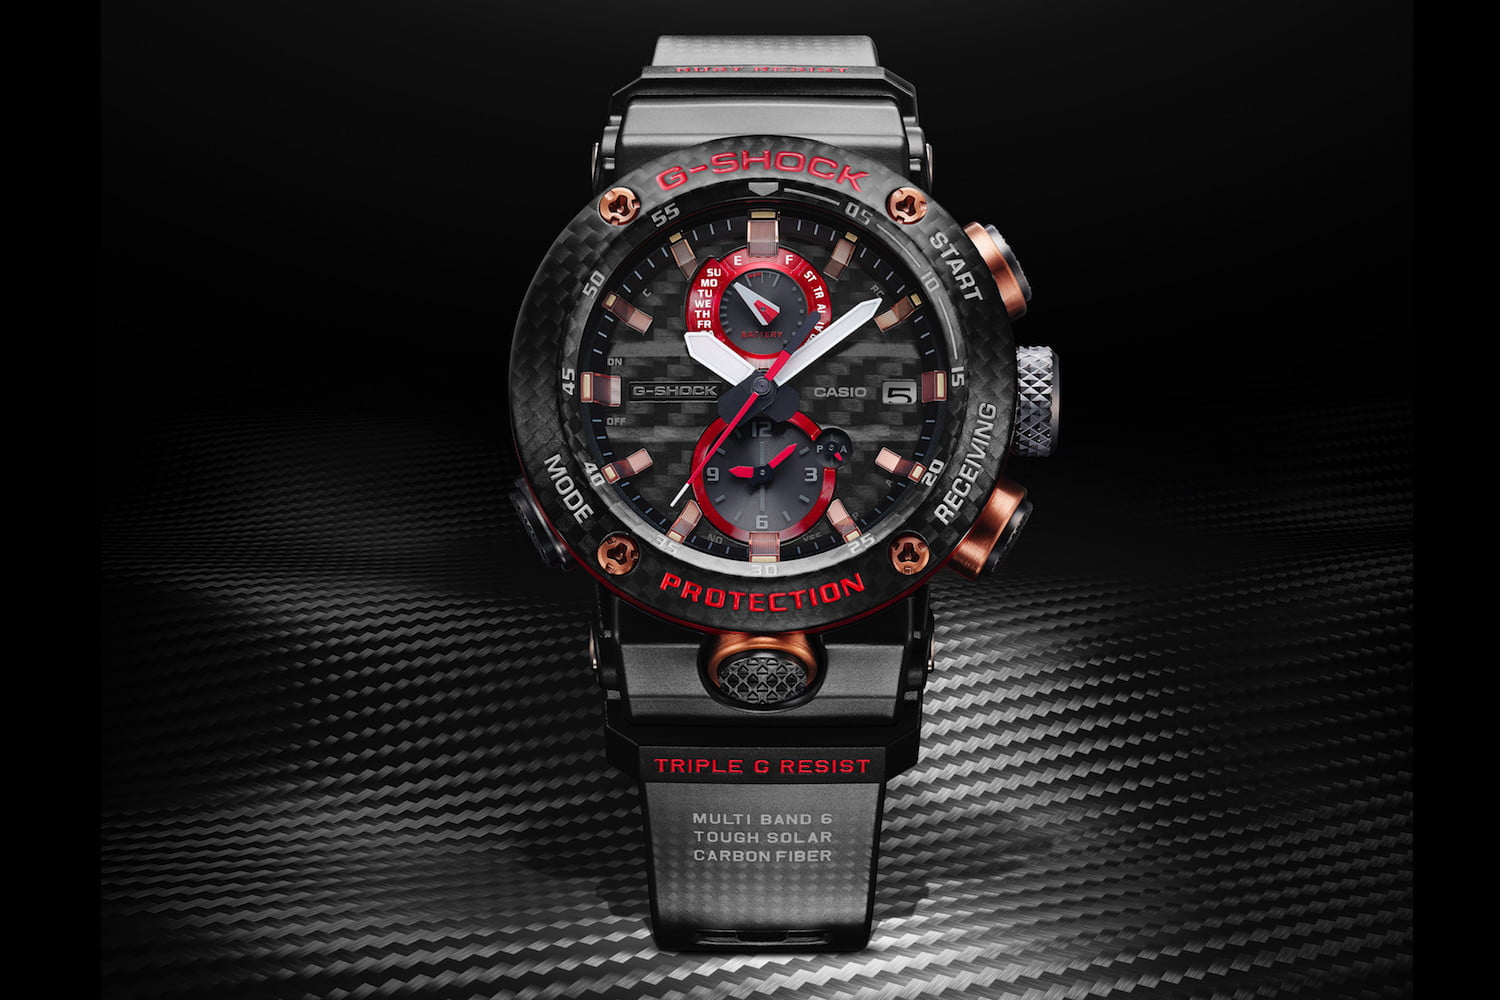 Stunning G Shock Is Virtually Indestructible In Carbon Fiber